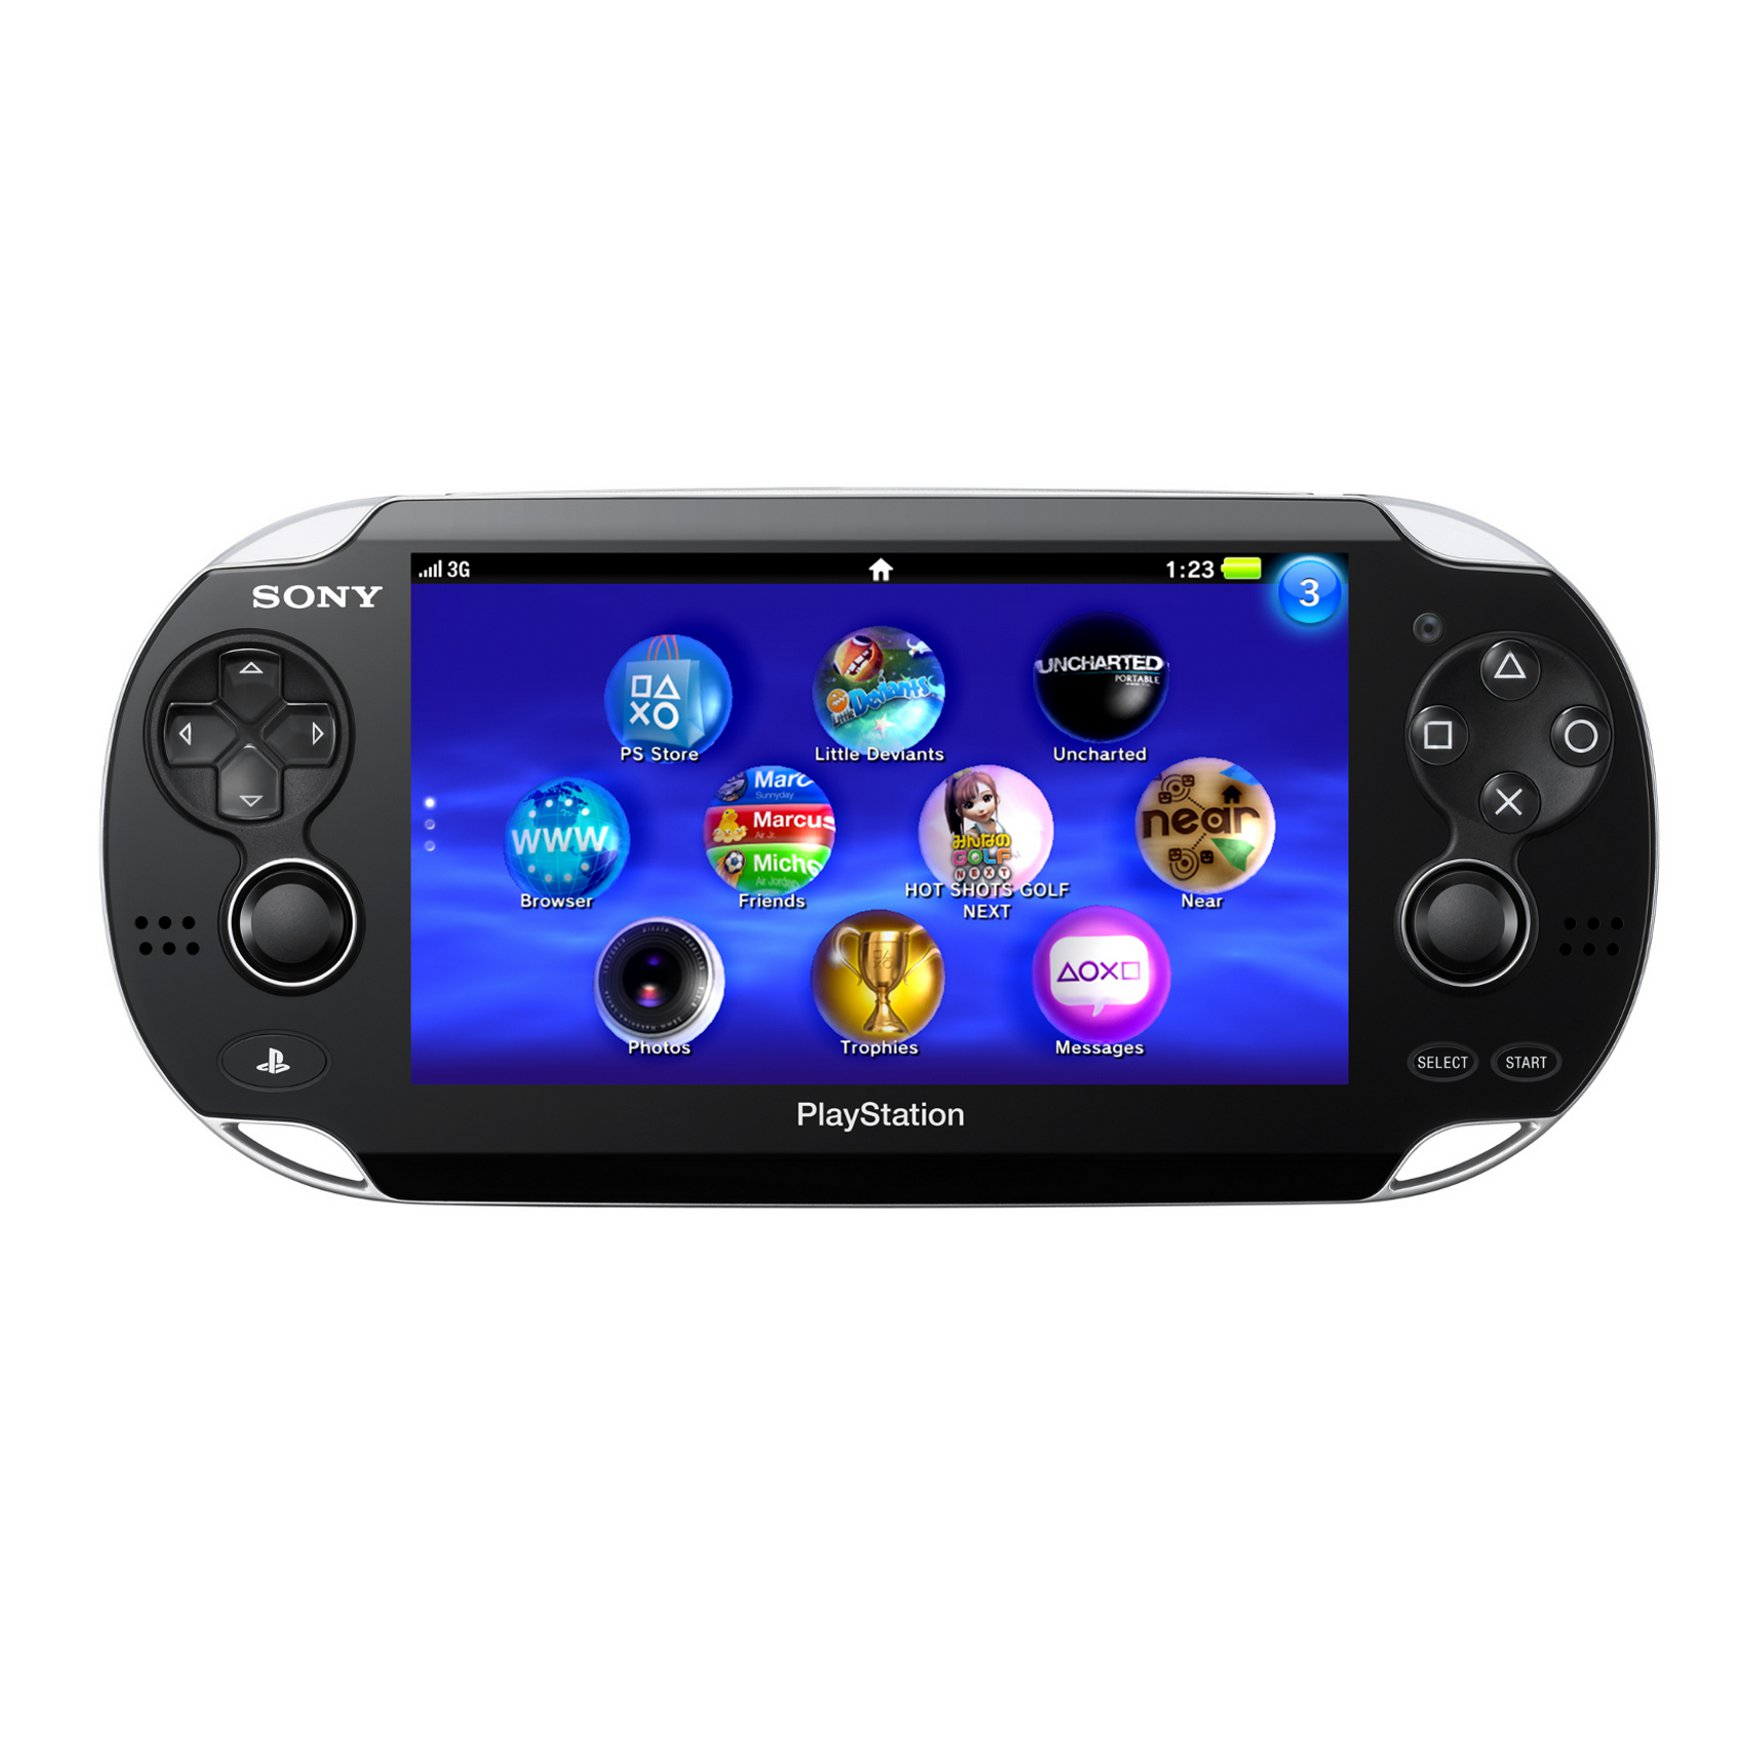 The Sony PSP2 is Here, Codename: NGP